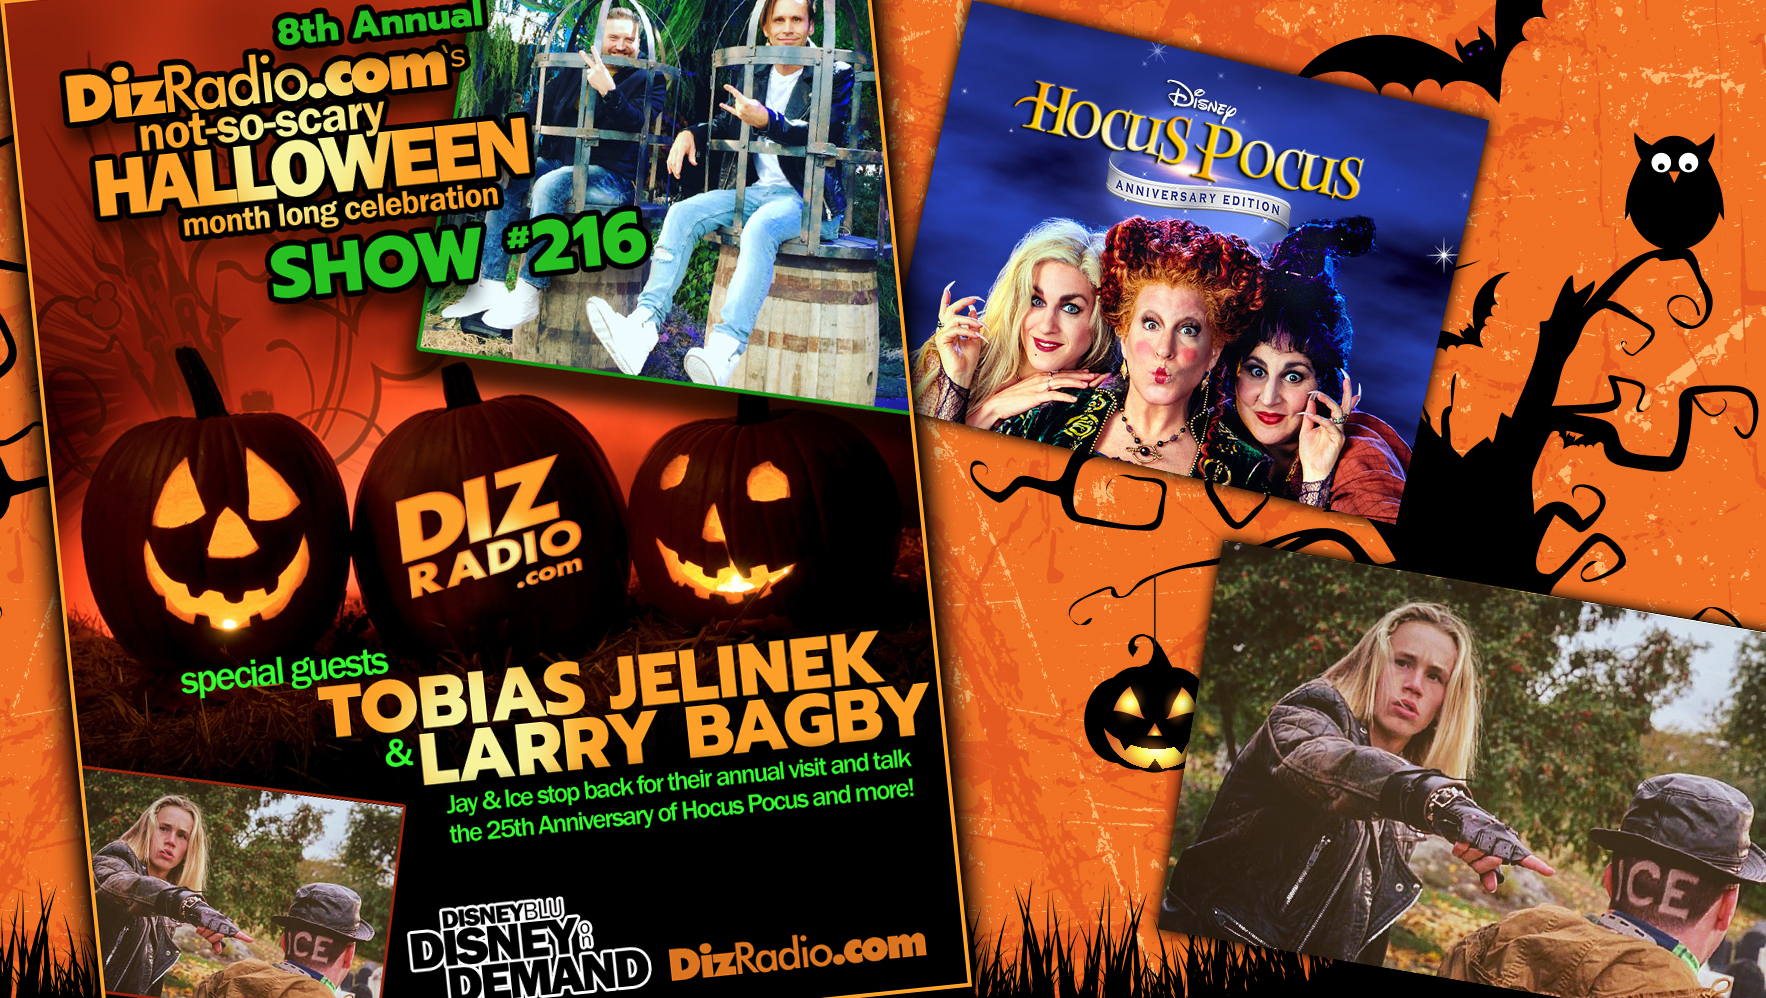 DisneyBlu's DizRadio Disney on Demand Show #216 w/ Special Guests TOBIAS JELINEK & LARRY BAGBY (Jay and Ice from Disney's Hocus Pocus)